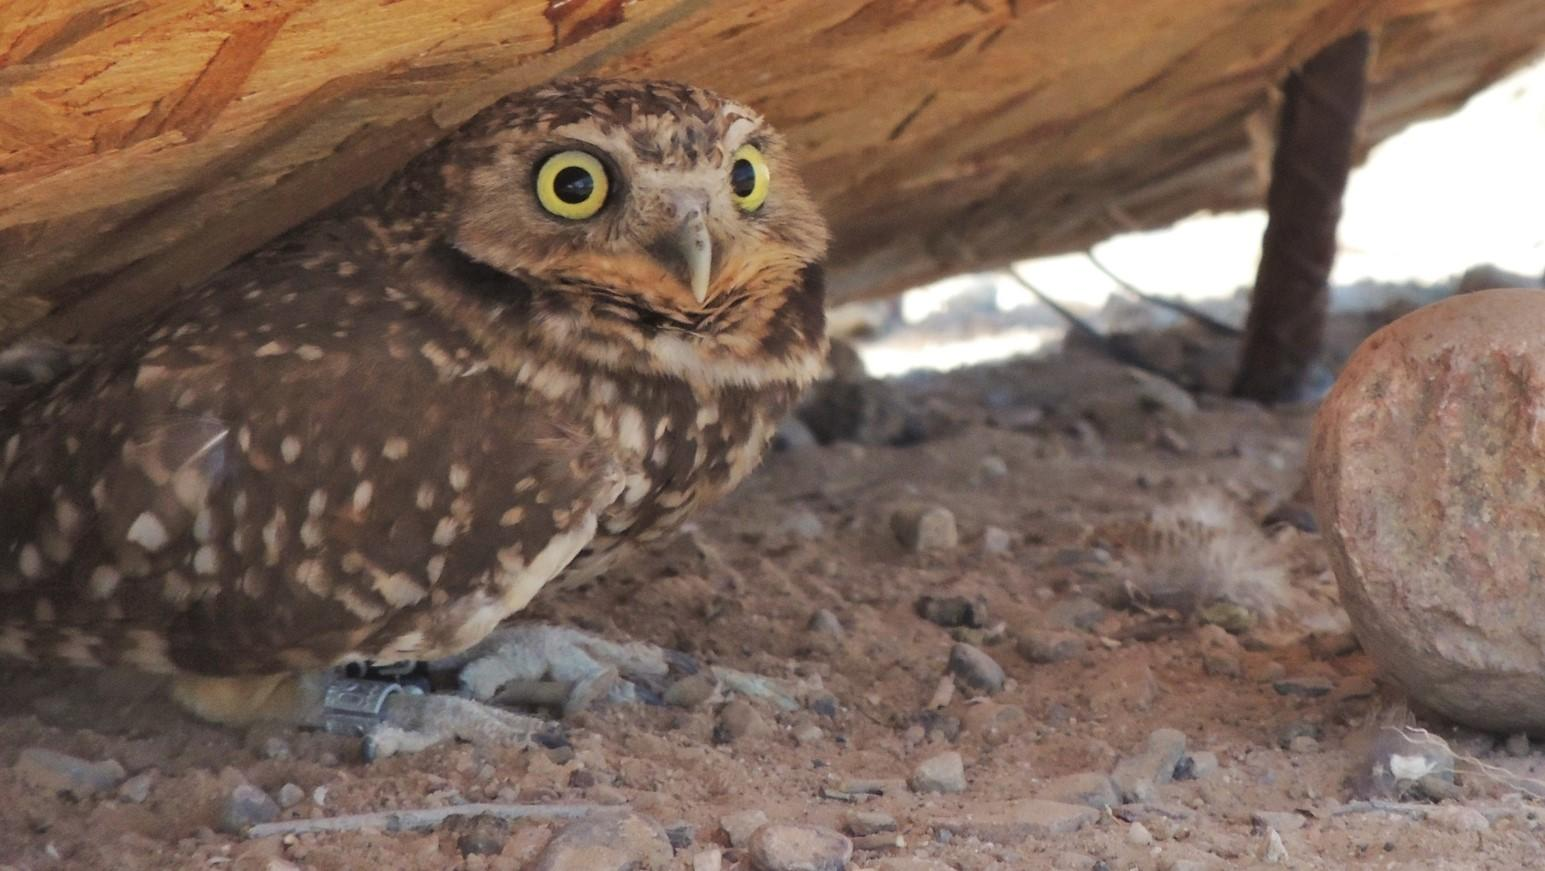 A relocated Burrowing Owl looks up longingly.